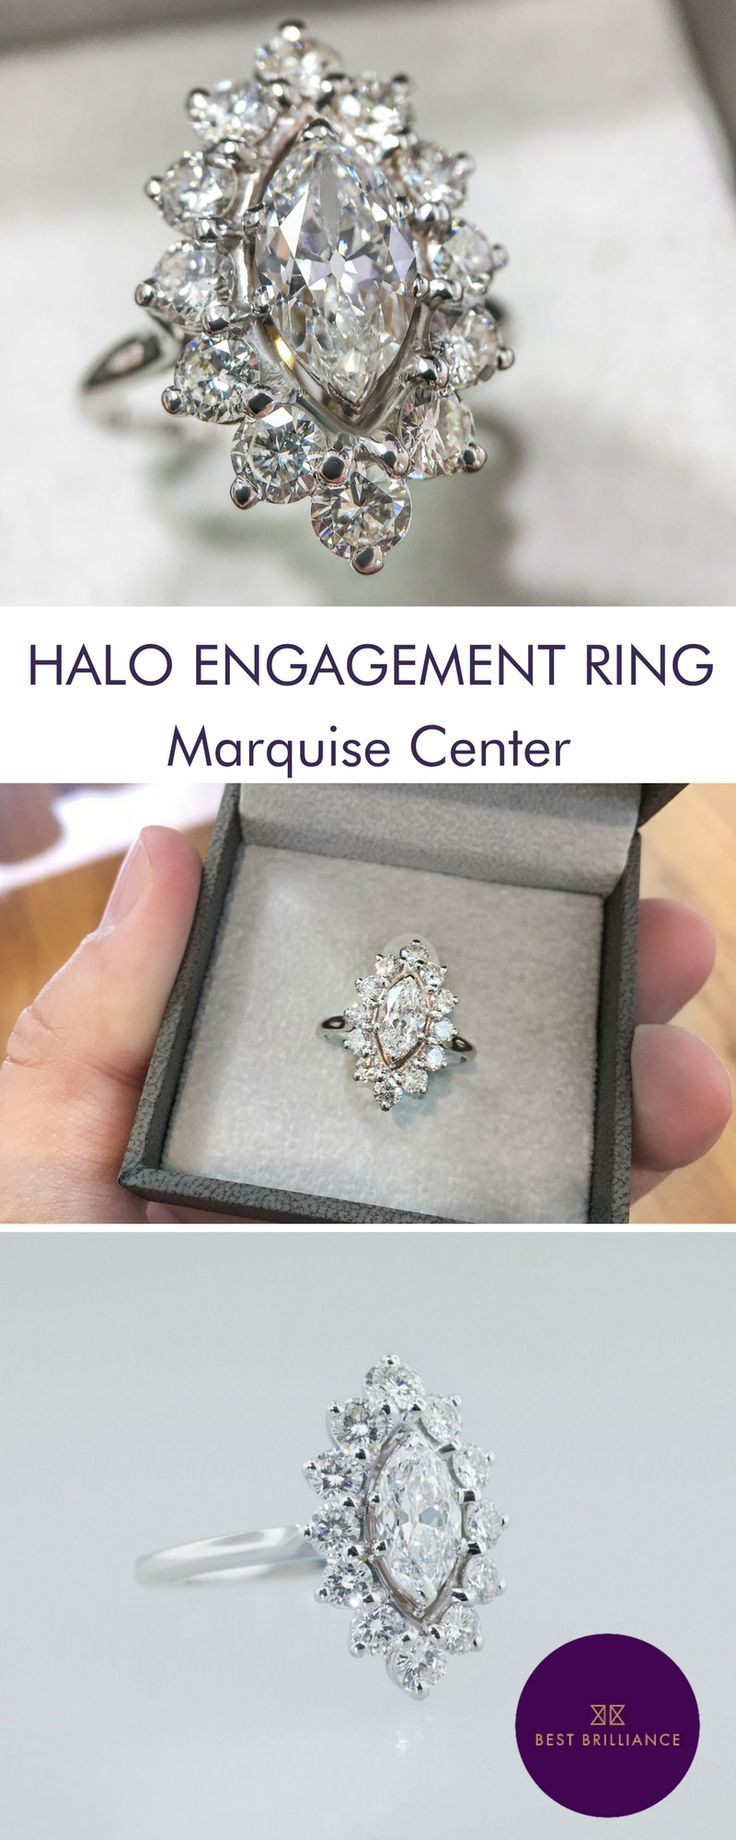 1.00 Carat D VVS2 Marquise Center diamond is mounted along with 1.20 Carat Side diamonds in a 14K White Gold Halo Style Setting on a delicate shank (Total 2.20 Carat). 30 day money back guarantee & 5 years gold warranty. Explore unique and simple diamond engagement rings for brides at https://bestbrilliance.com/popular-on-instagram/2-20-carat-d-vvs2-marquise-floral-halo-engagement-ring-14k-white-gold-99926-html.html | Weddings